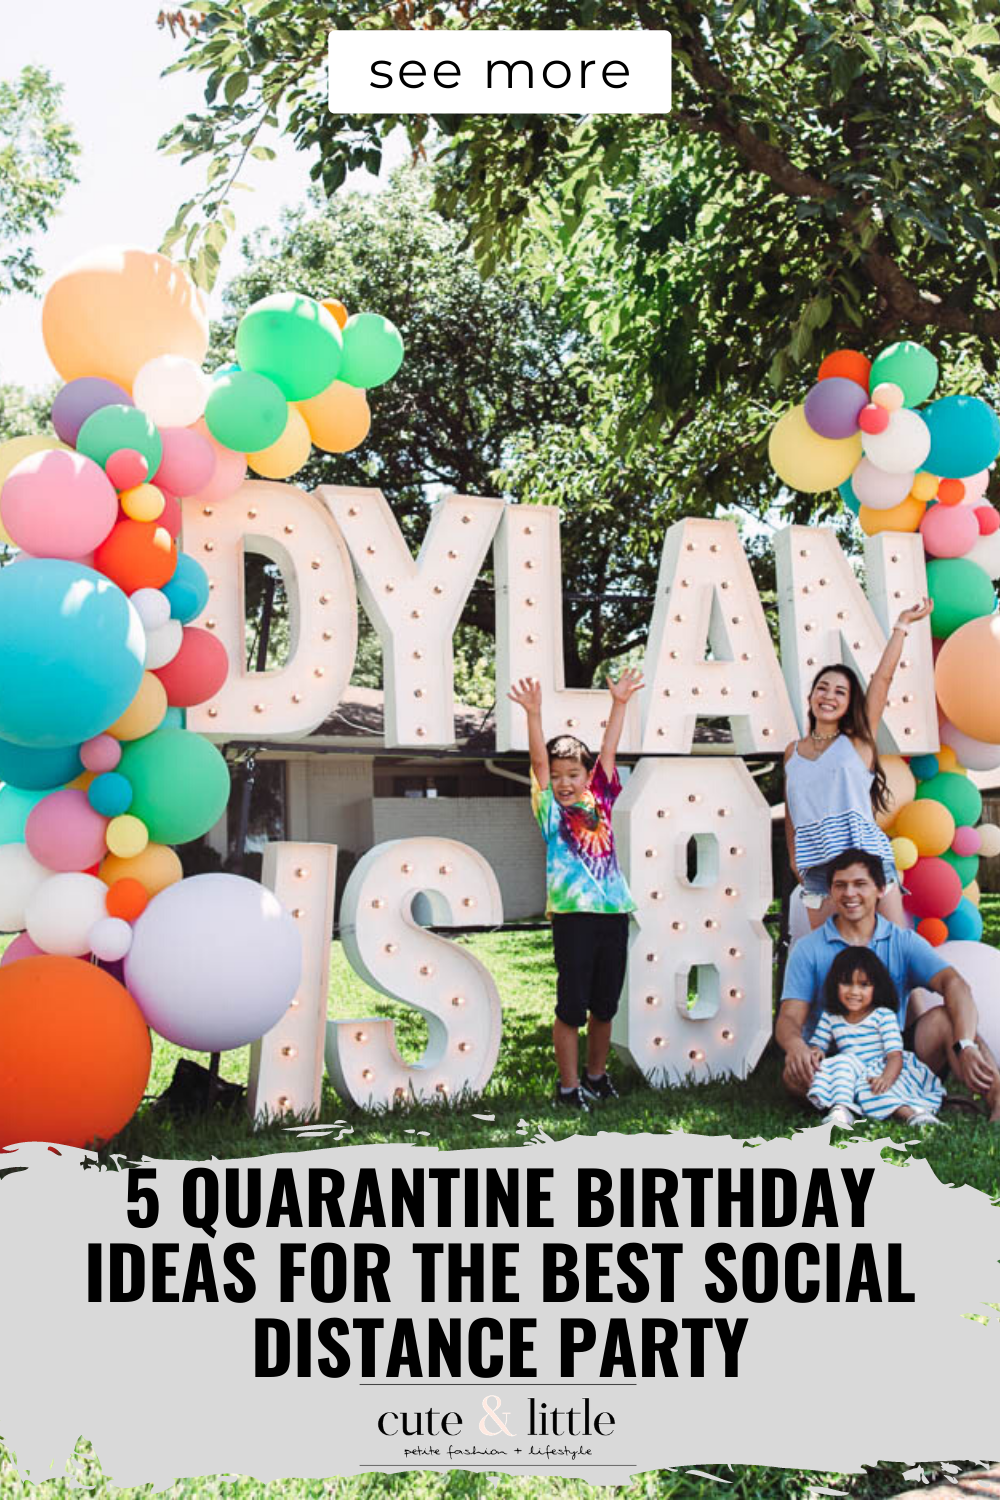 Click here to see these quarantine birthday ideas for a